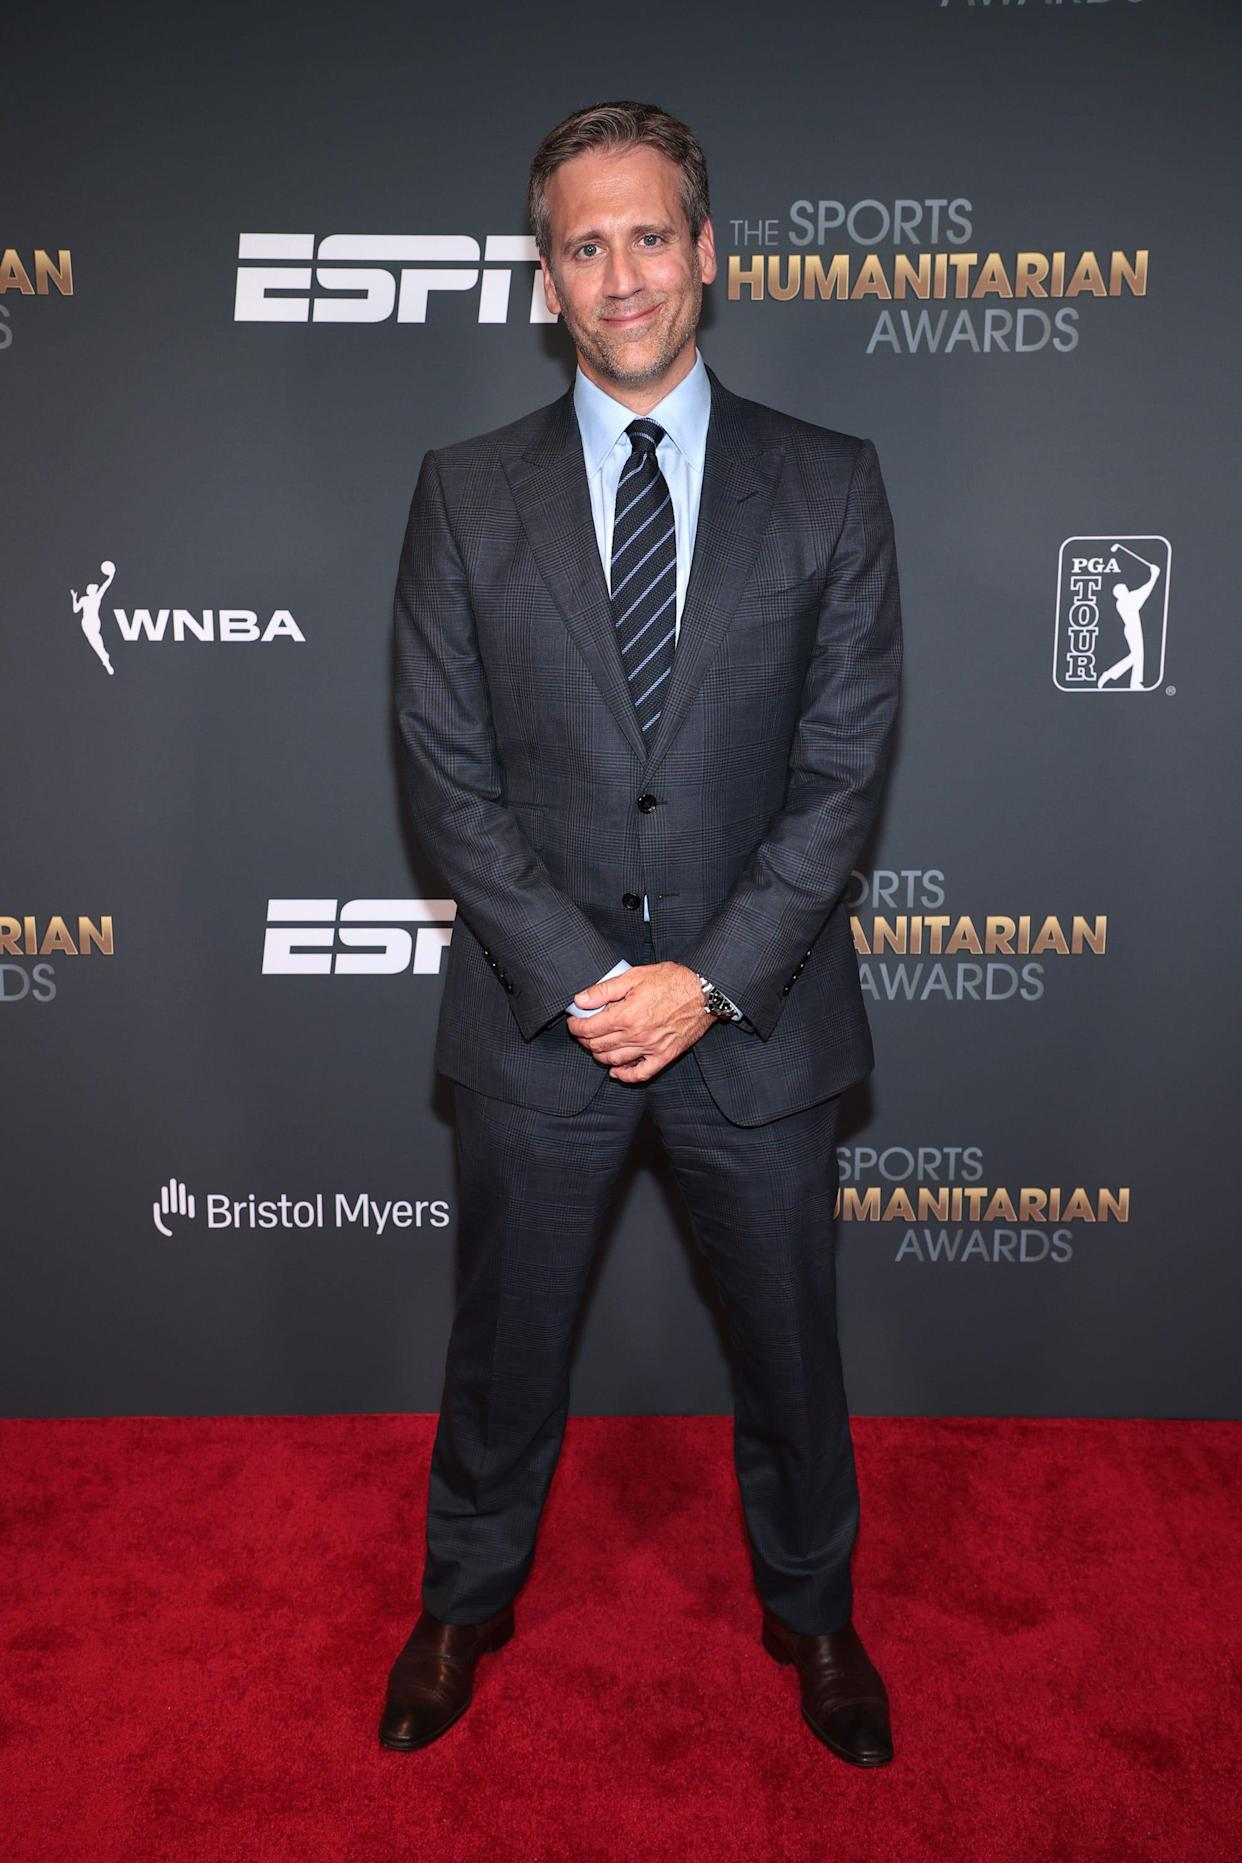 Max Kellerman attends the 2021 Sports Humanitarian Awards on July 12, 2021 in New York City.